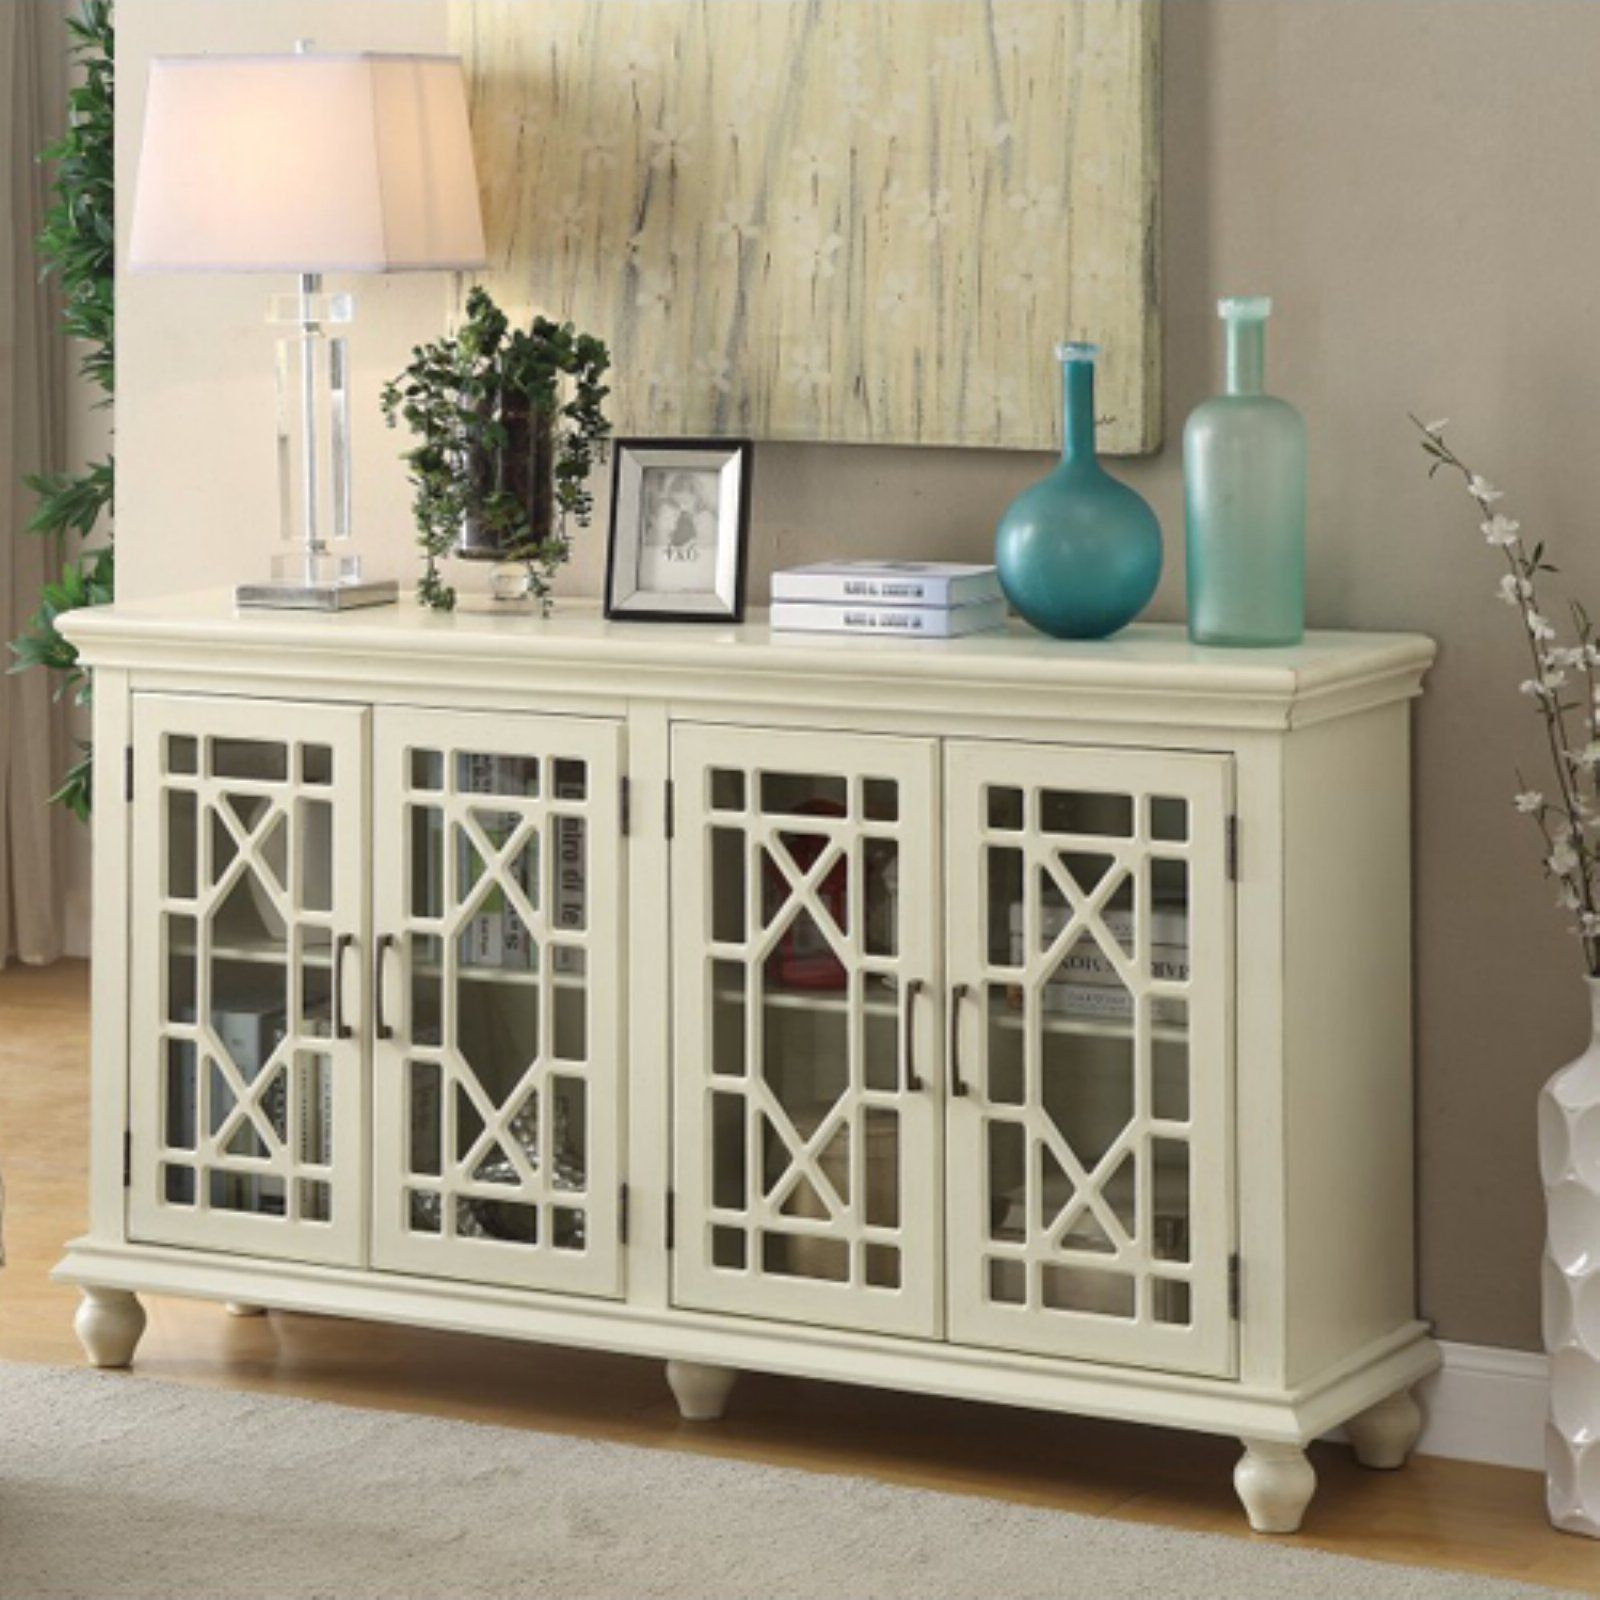 Benzara Transitional Wooden Accent Cabinet With Lattice Doors